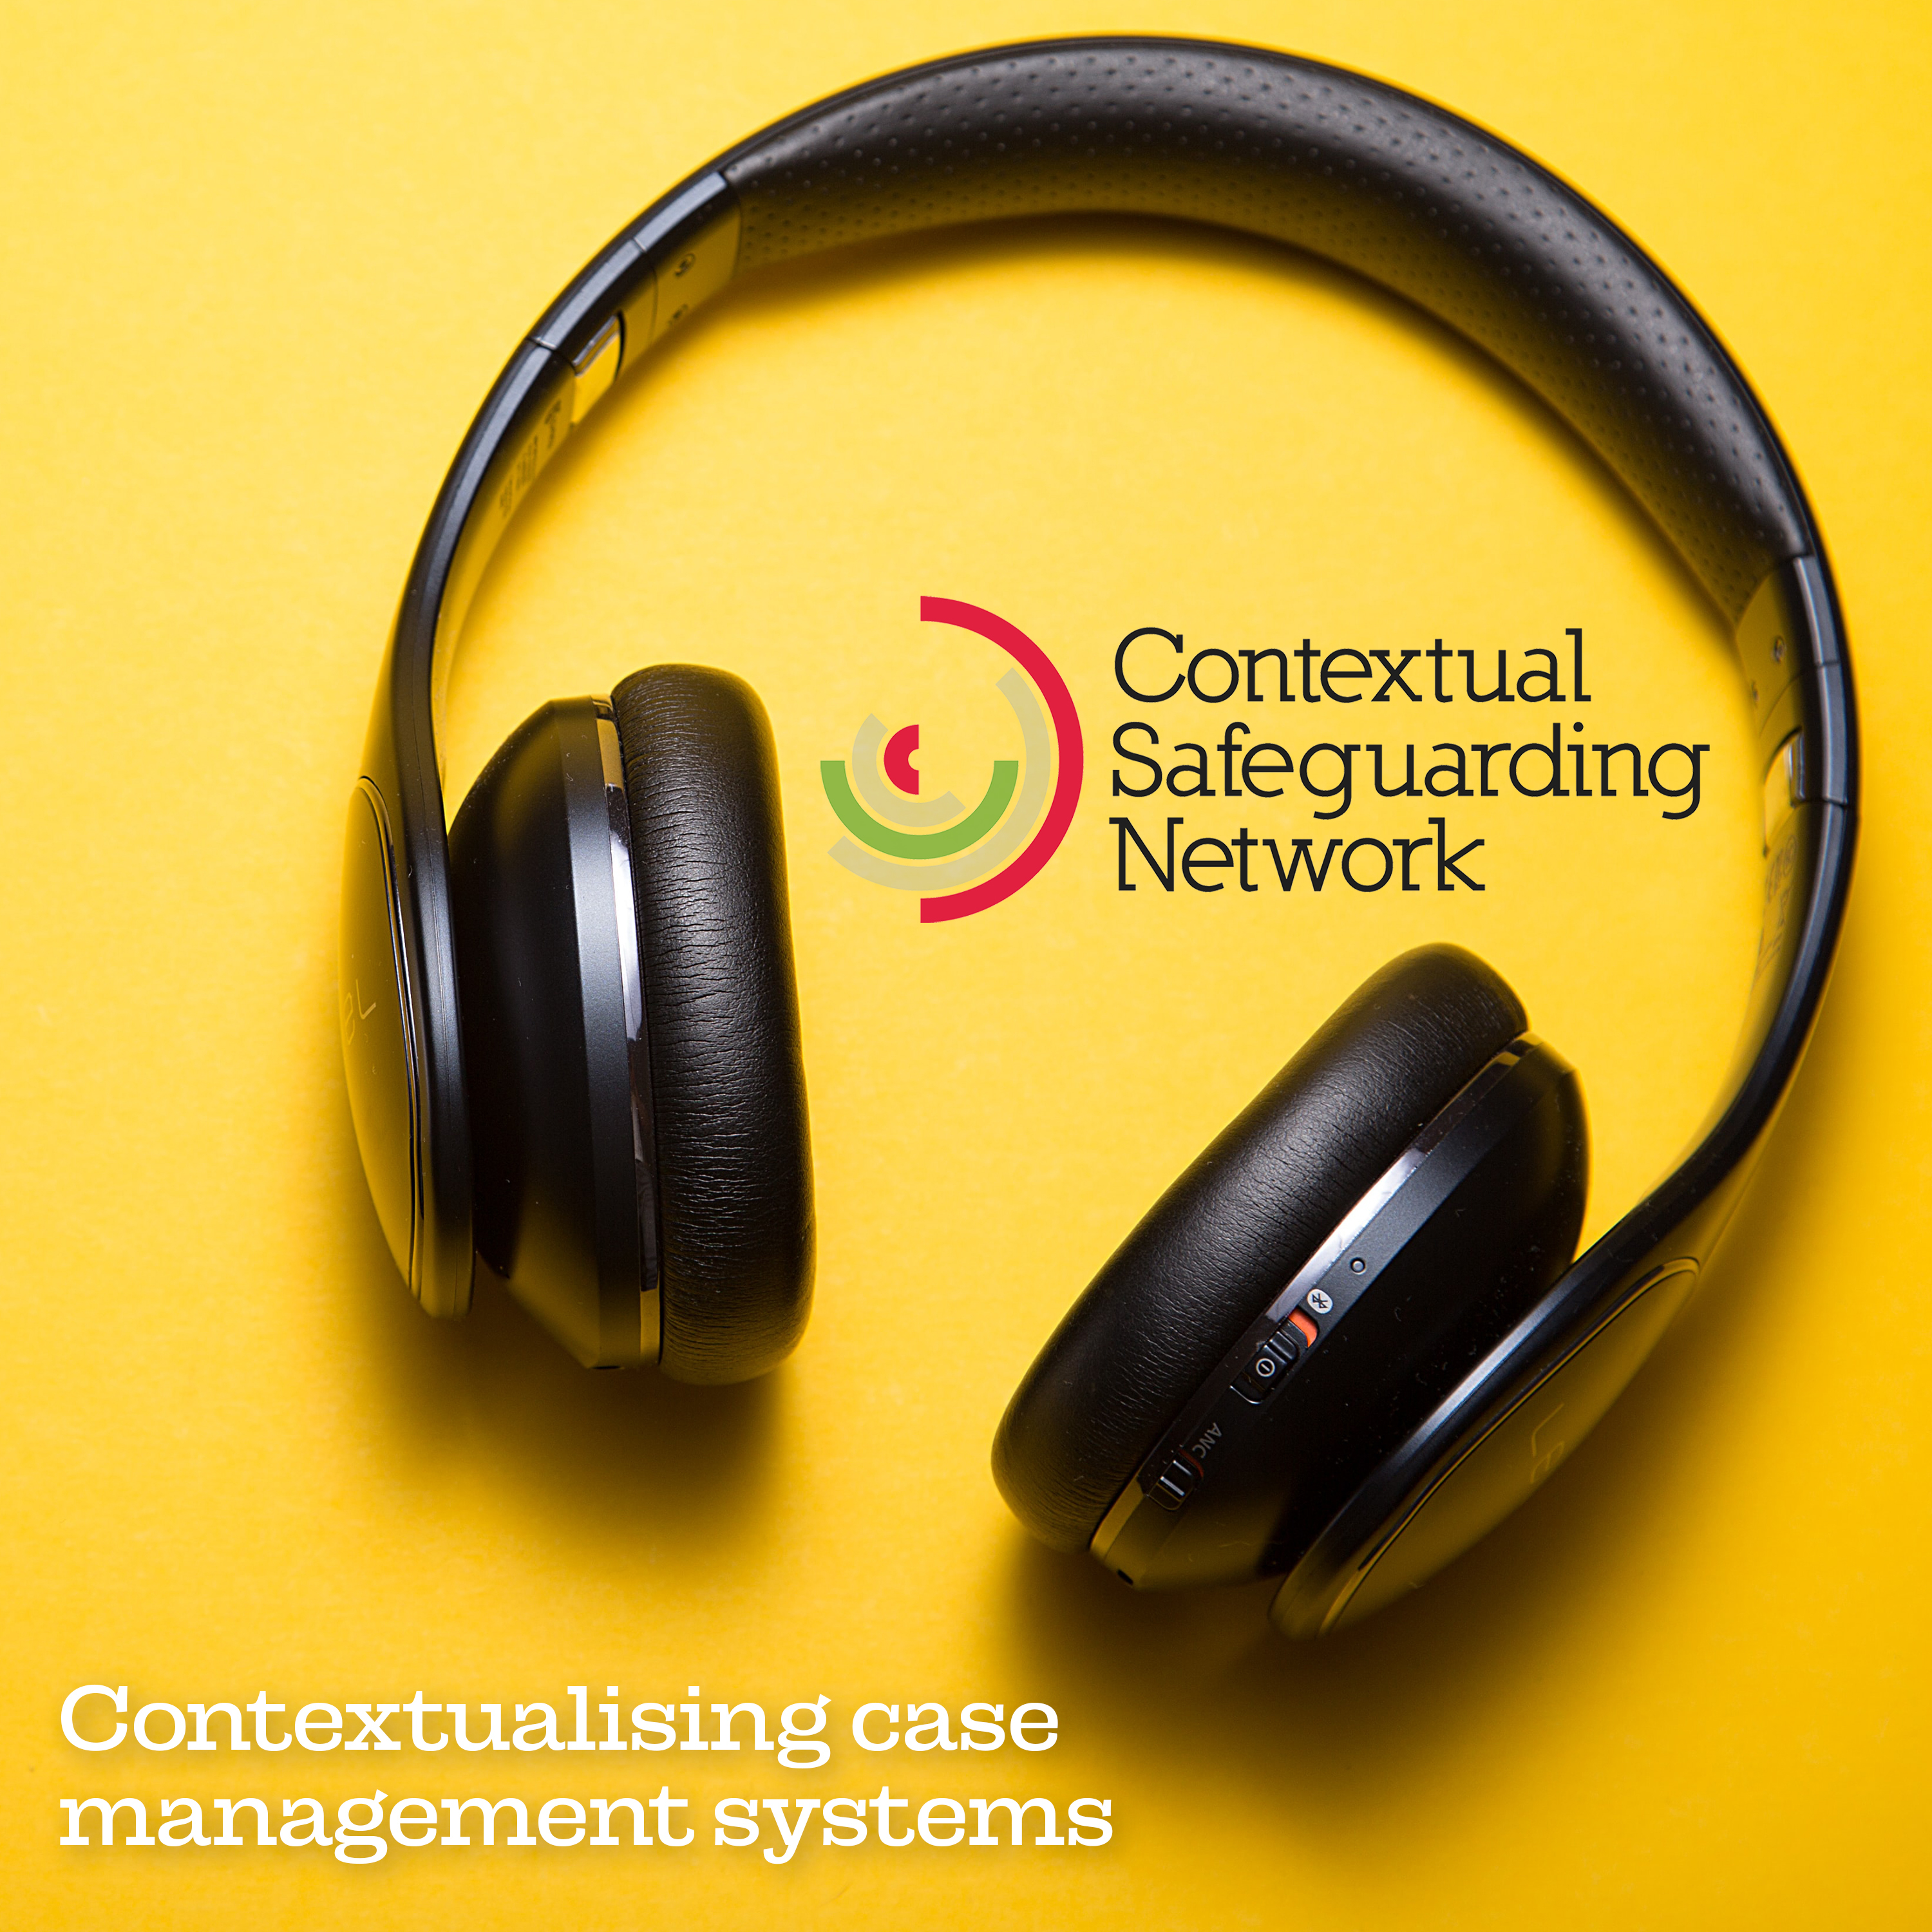 Contextualising case management systems